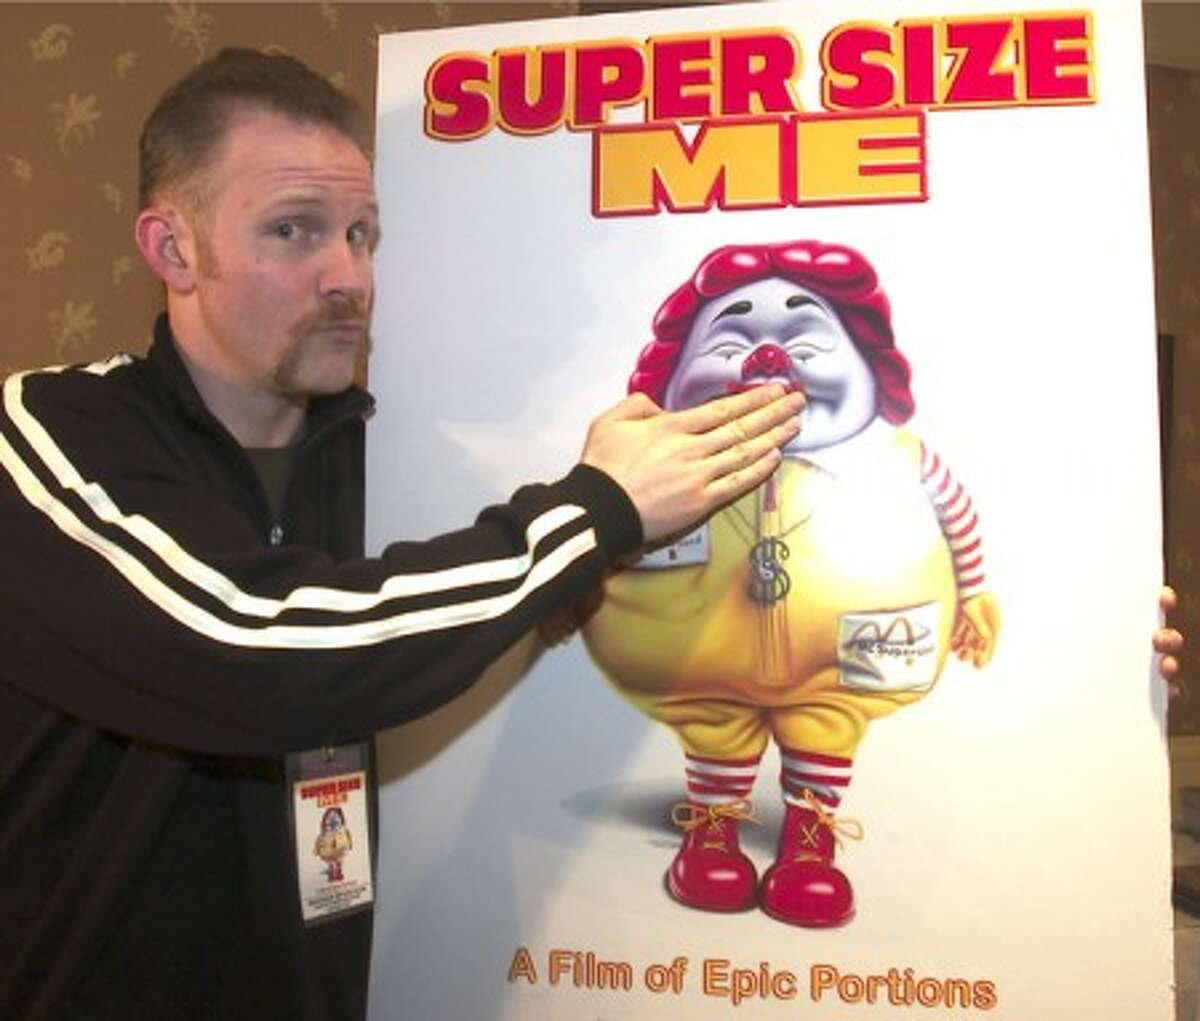 FILE-This March 3, 2004 file photo shows Morgan Spurlock,director, producer and star of the documentary film